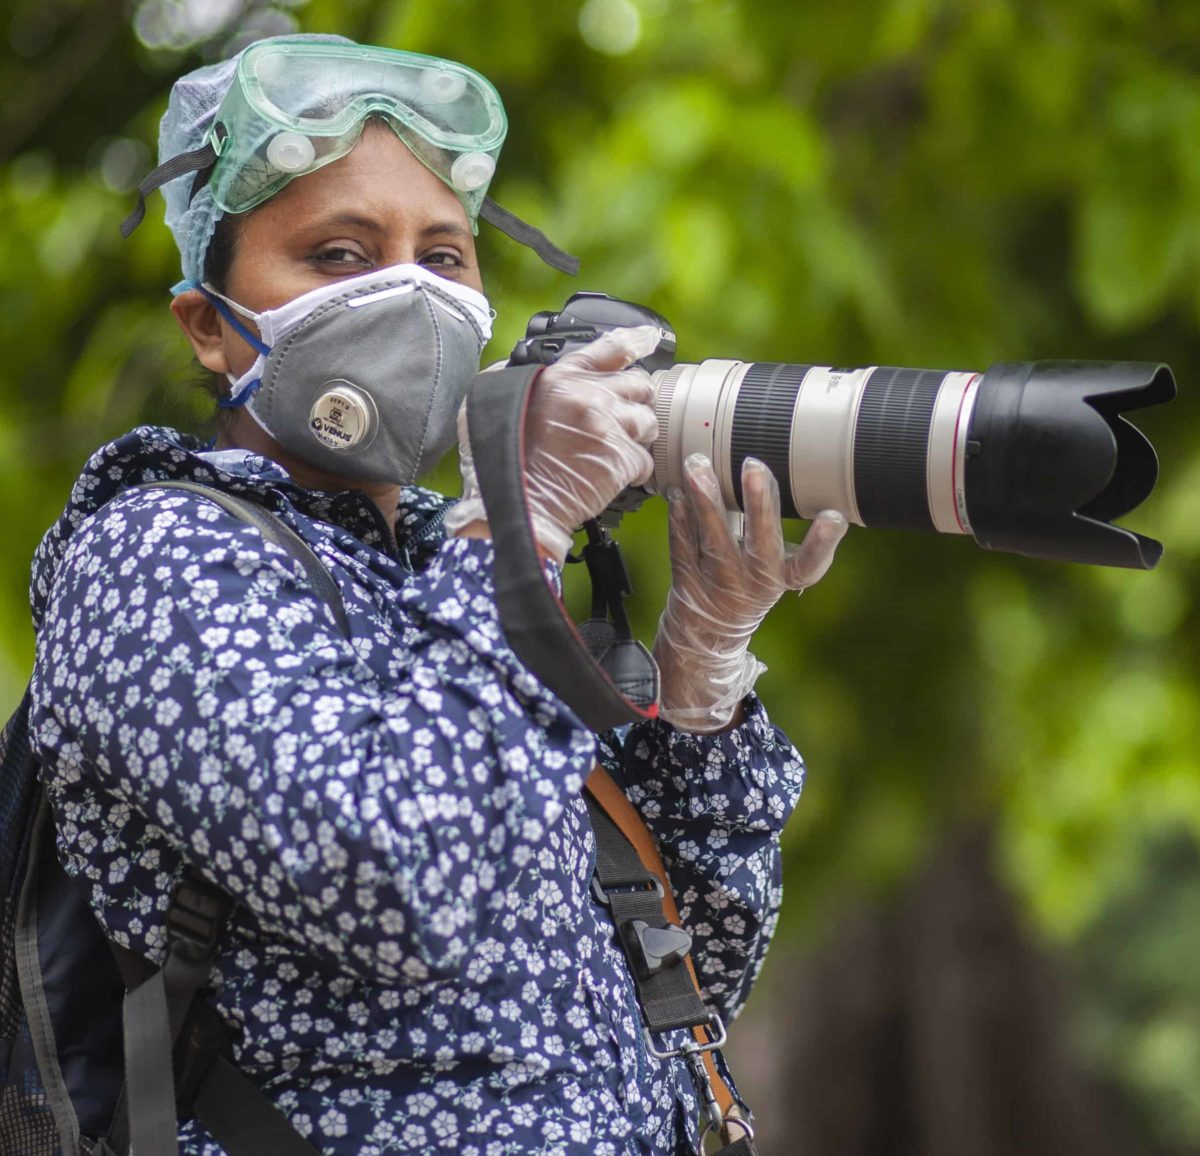 A woman wearing PPE holds a camera.